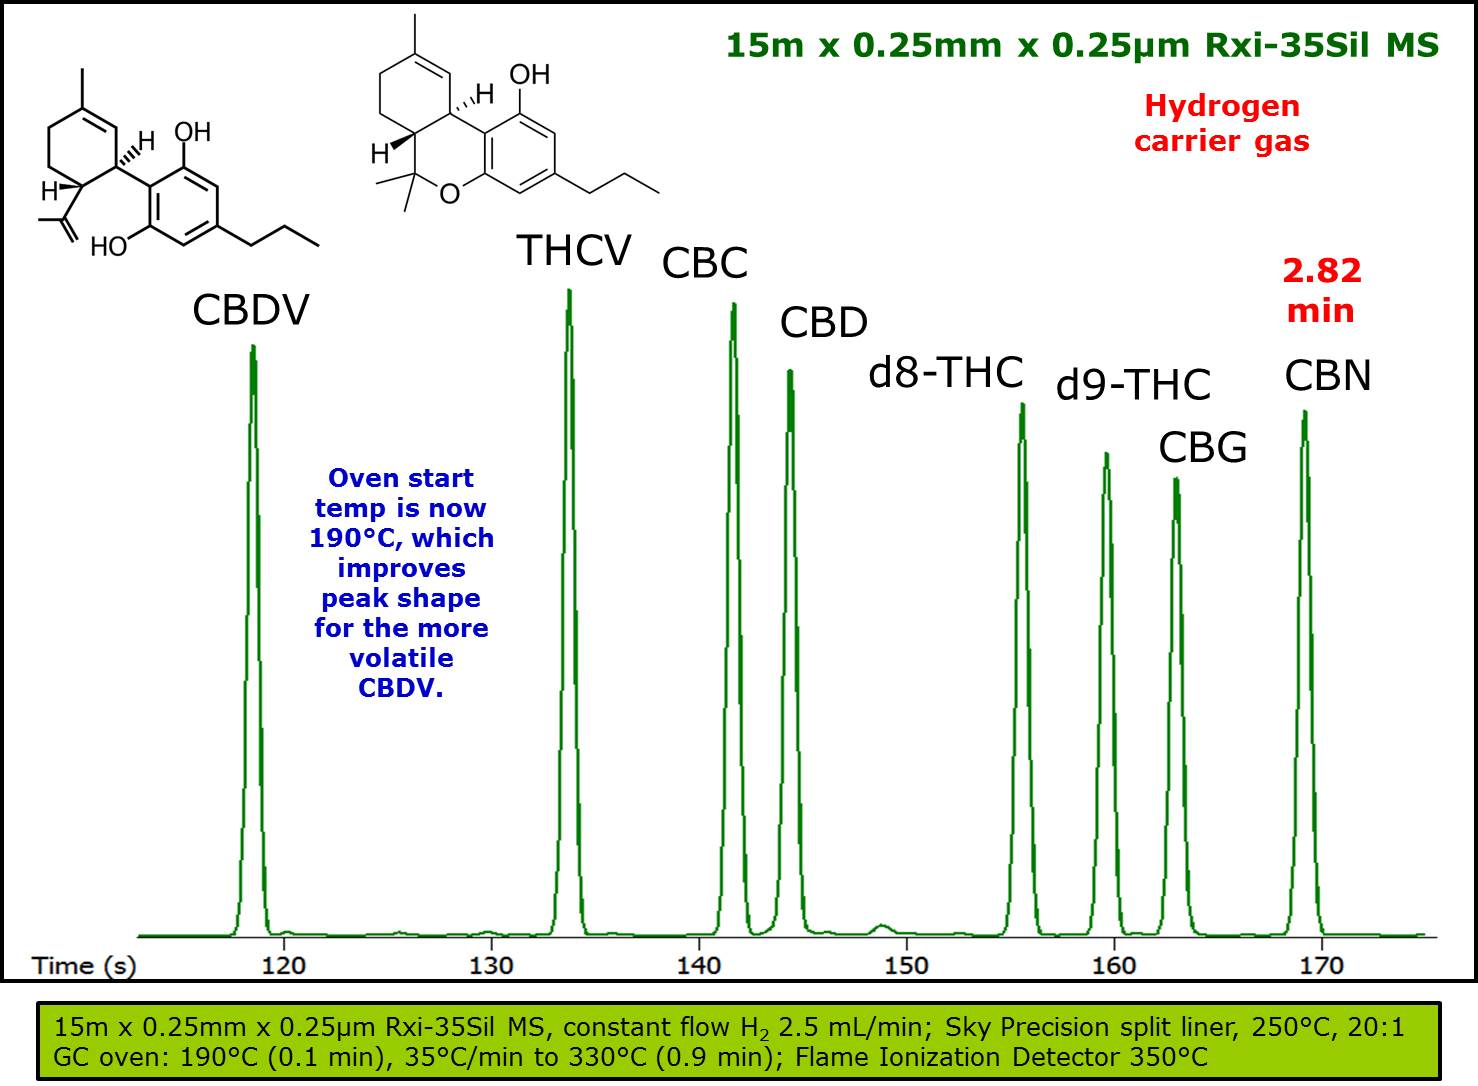 THE VAPORIZATION TEMPERATURES OF CANNABINOIDS AND THCV